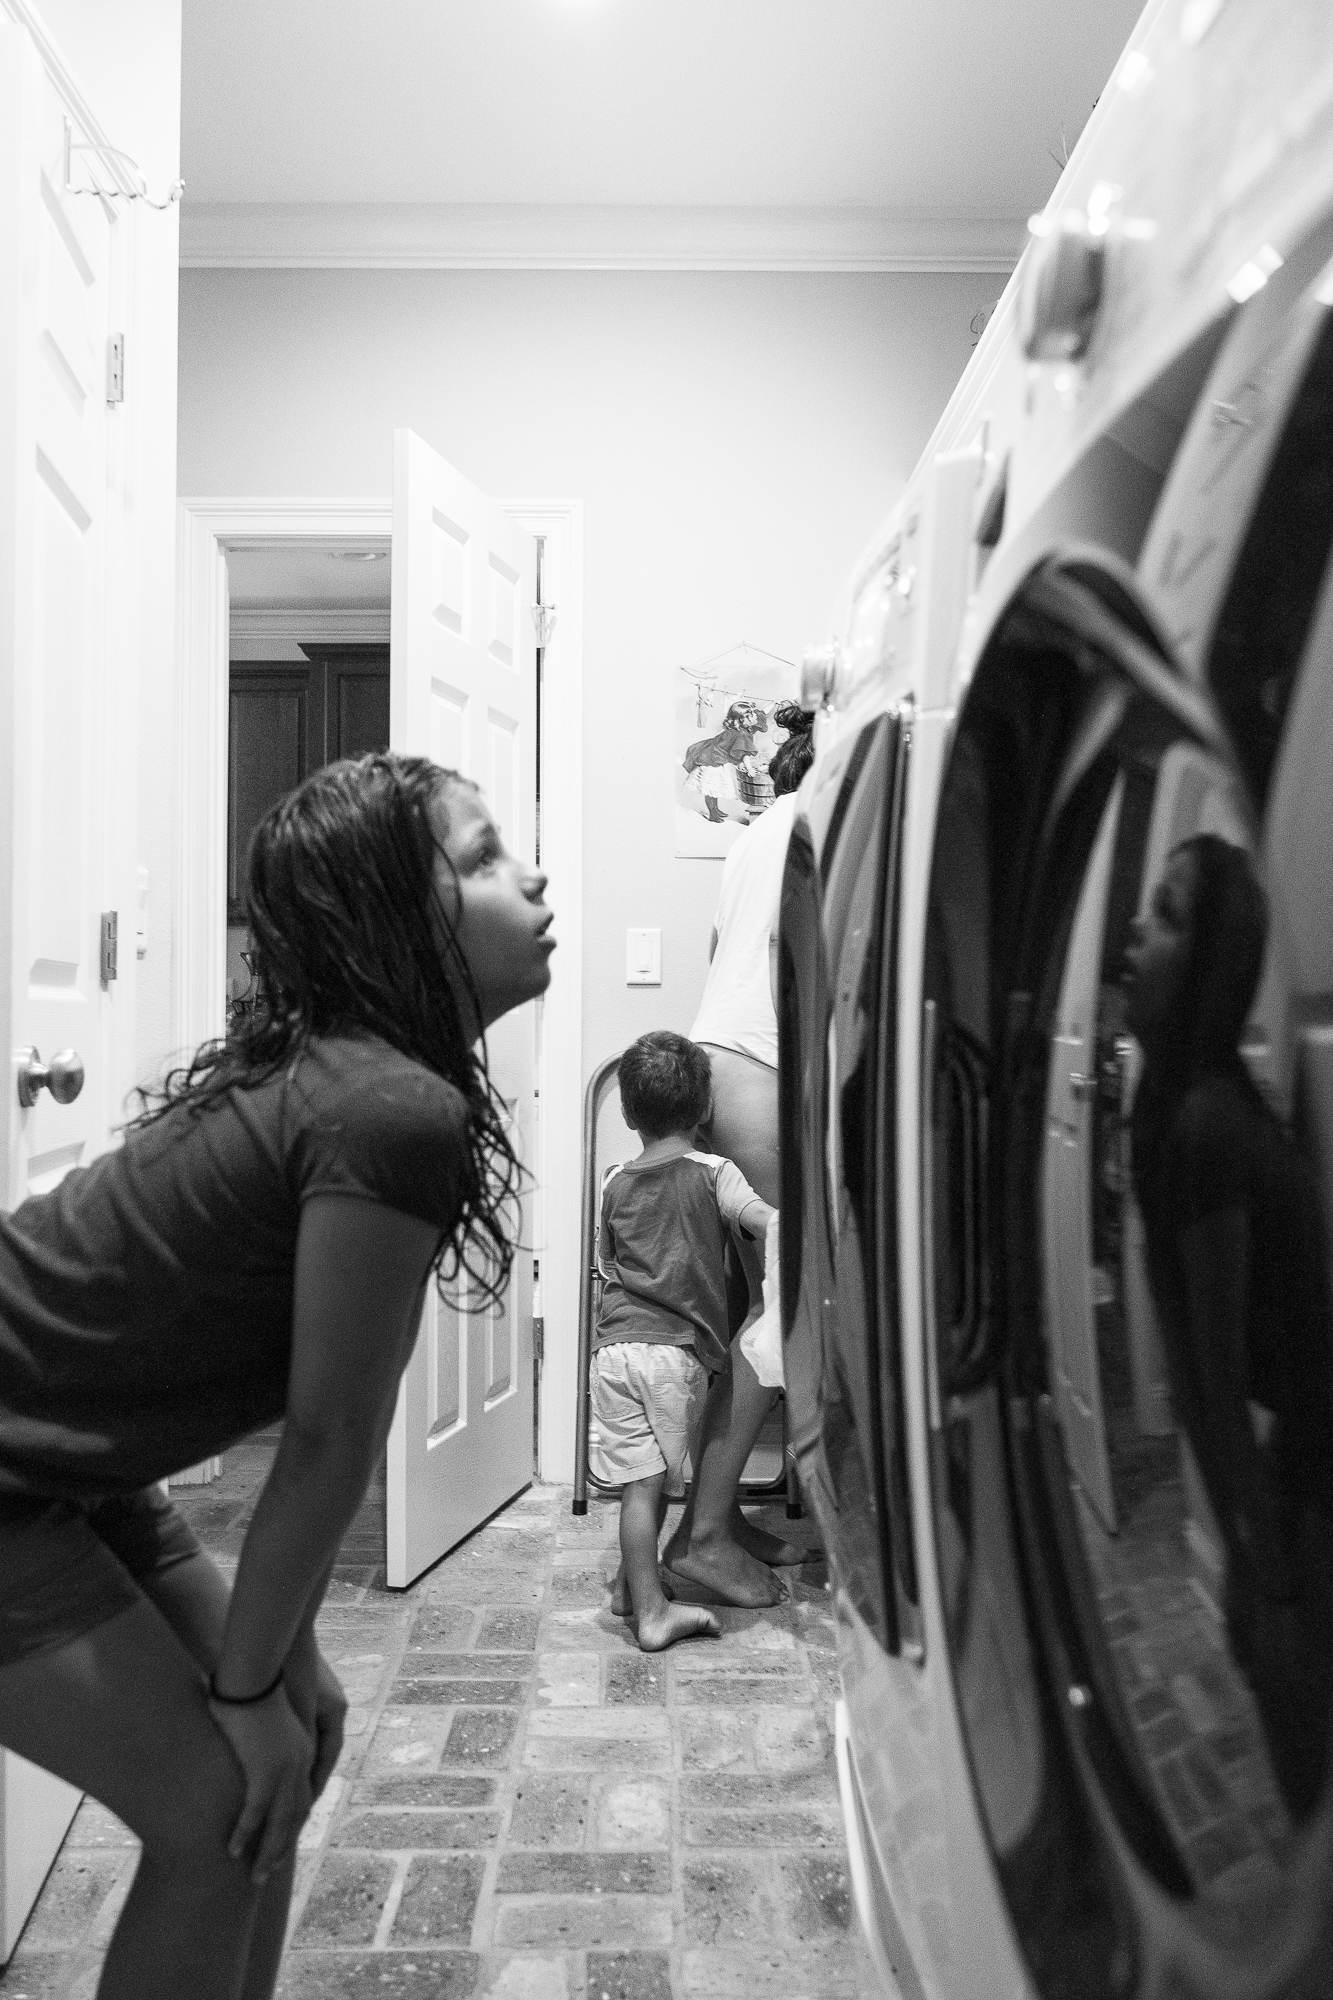 20170530-Hannah-a-day-in-the-life-X-Pro2-0193-Edit.jpg